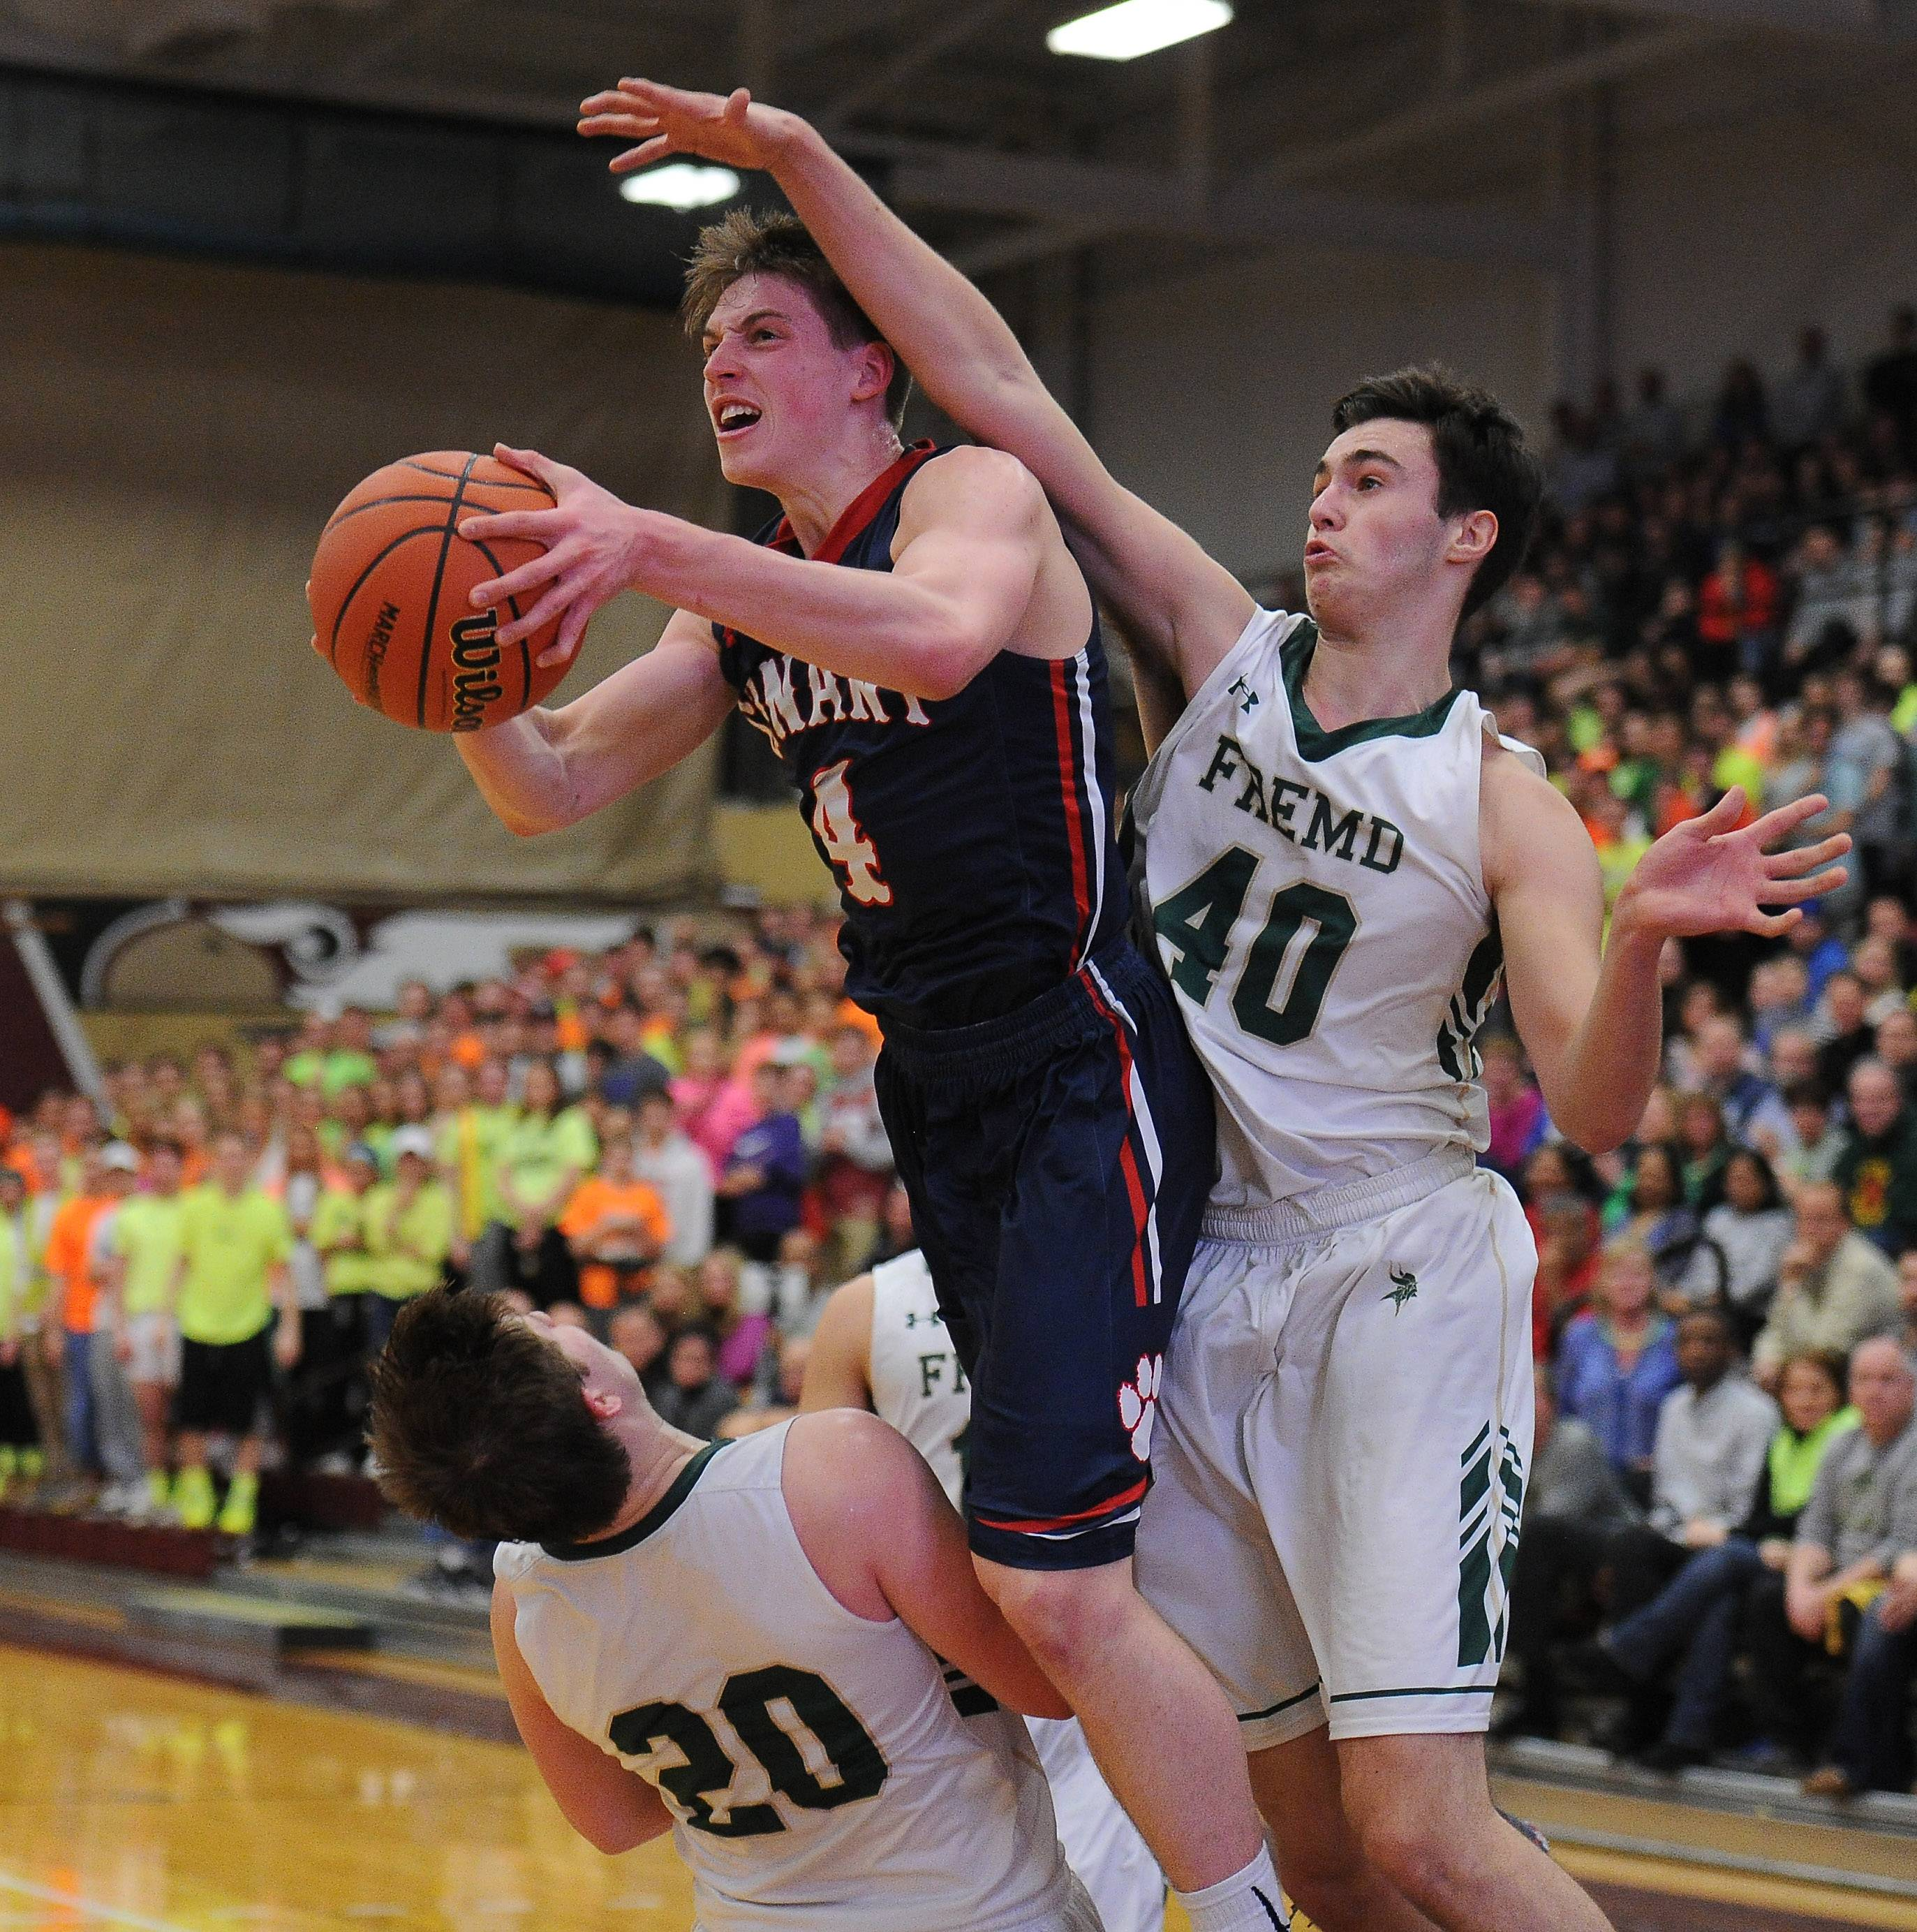 Fremd's Mark Kating and teammate Luke Schoffstall defend against Conant senior guard Jimmy Sotos on a drive to the basket in Class 4A sectional championship play at Robert Morris University on Friday.